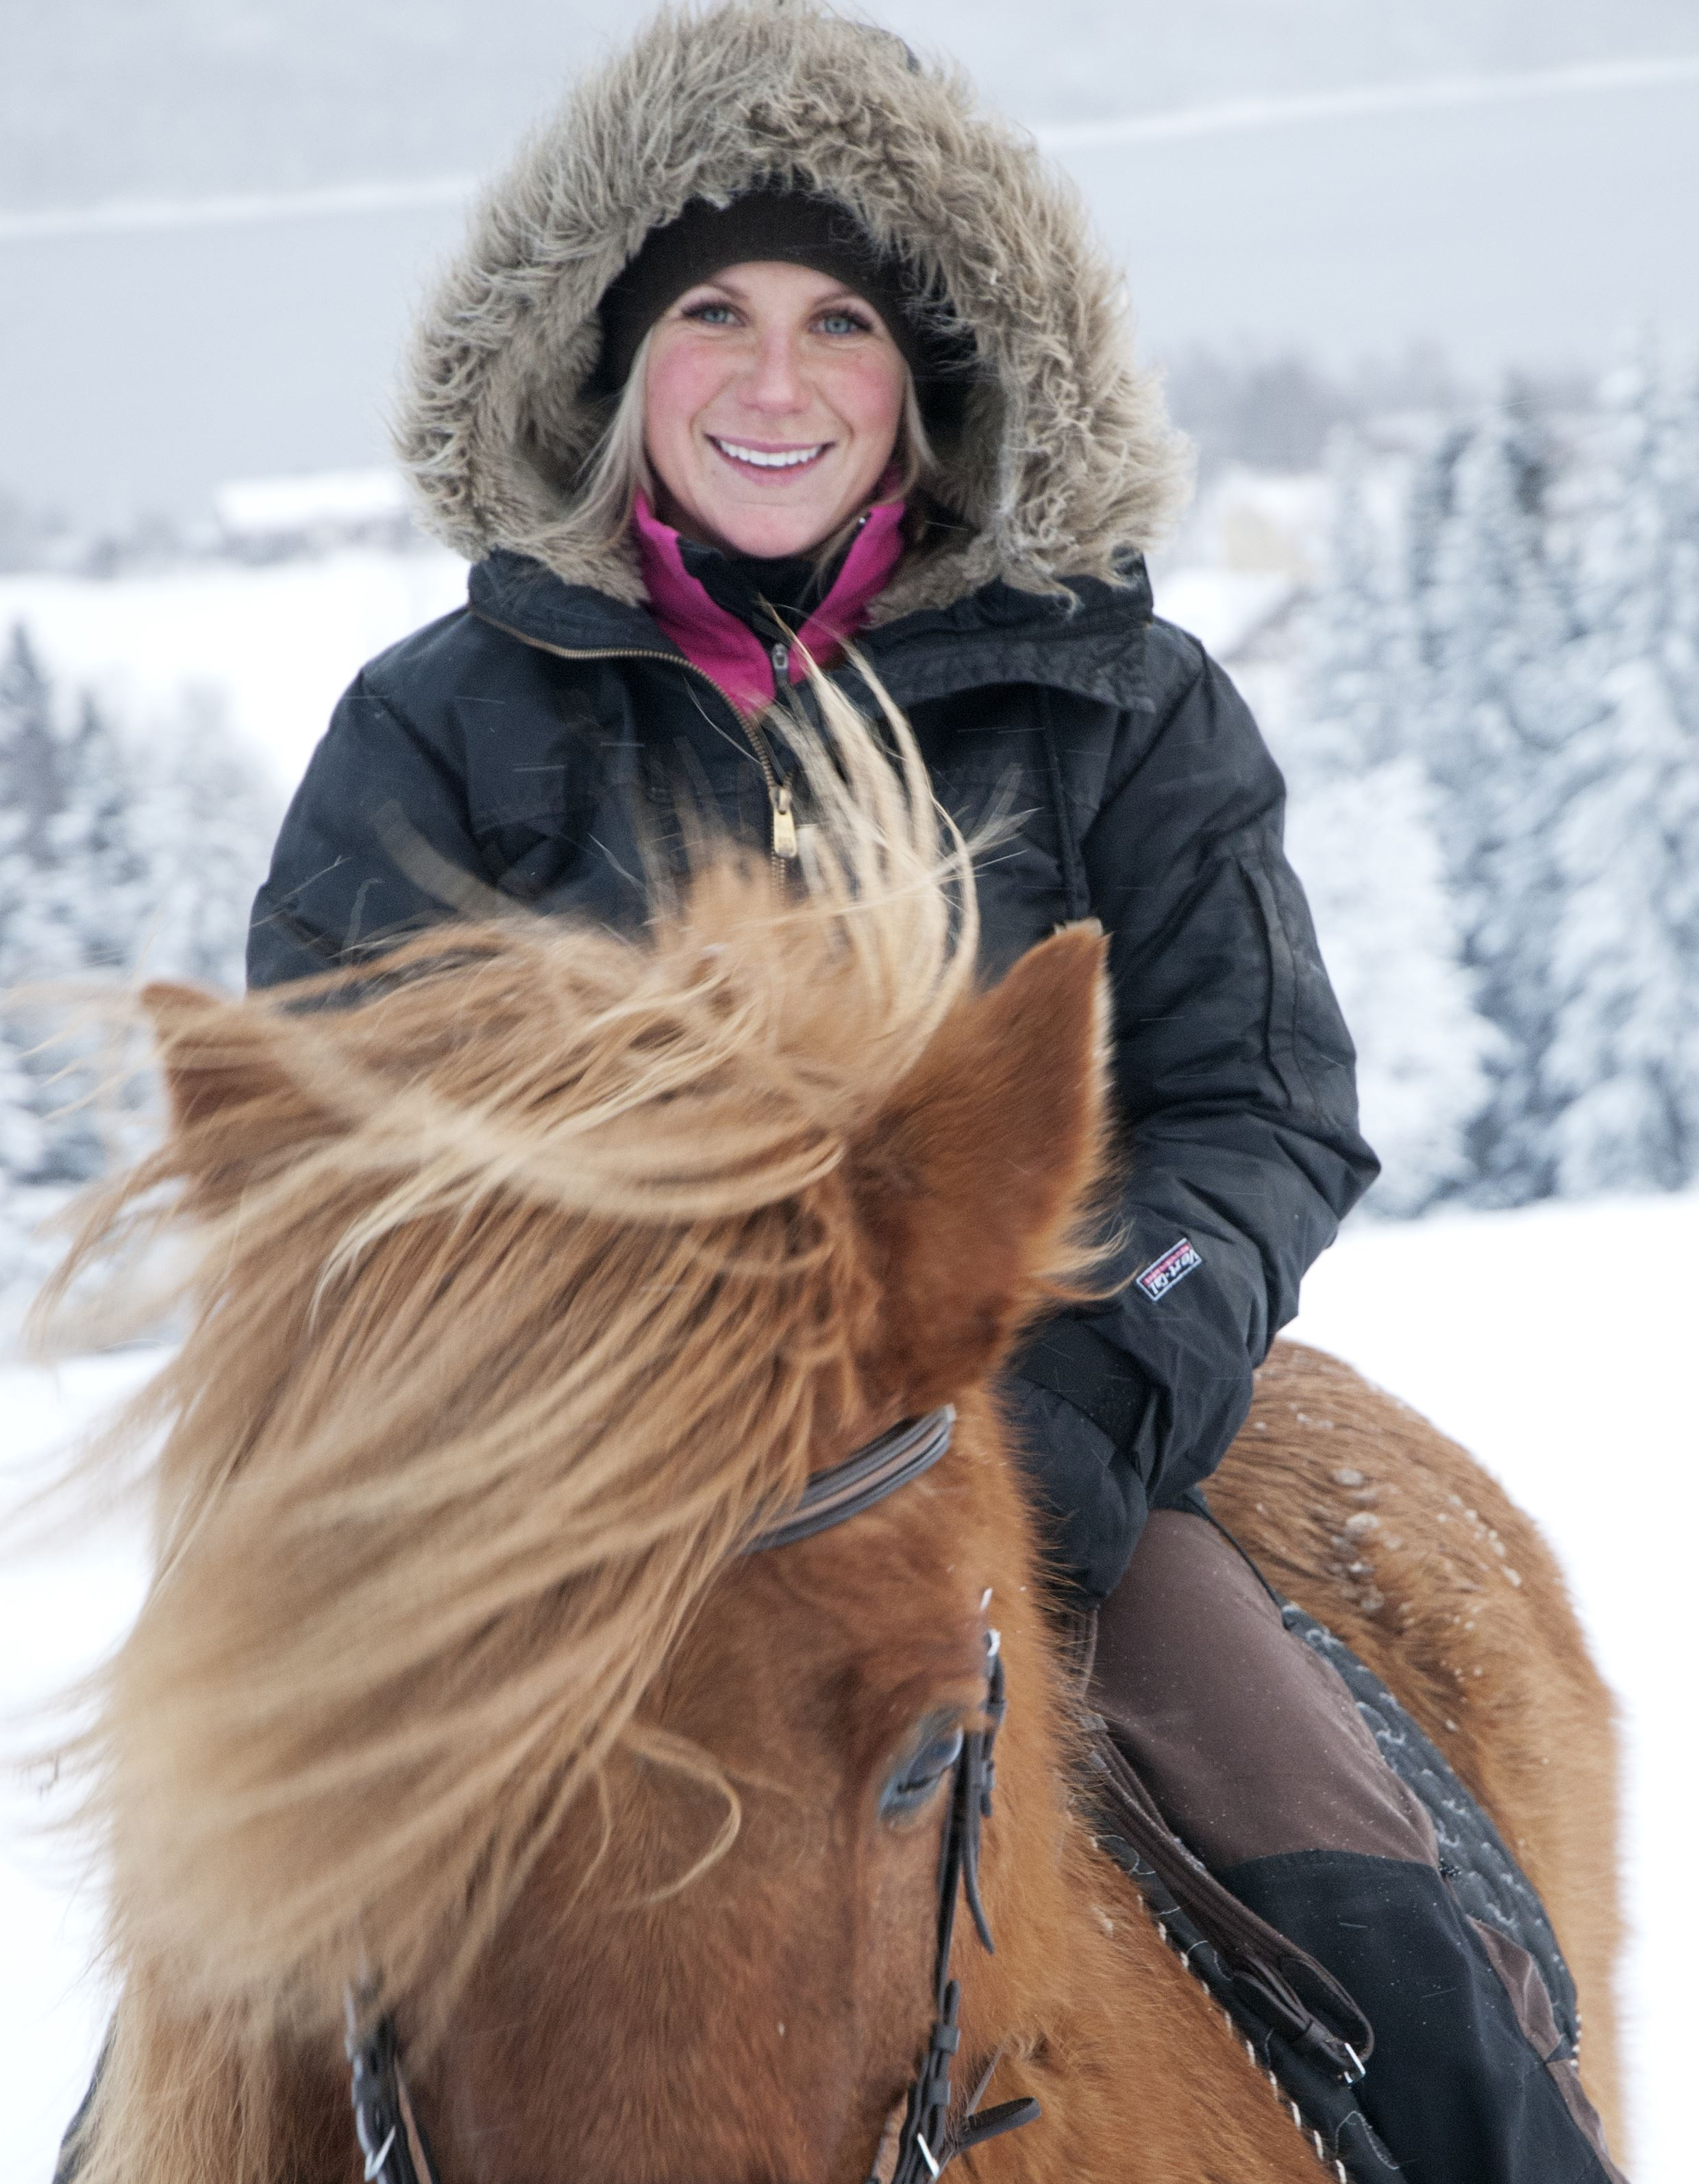 Enjoy a great mountain experience from horseback